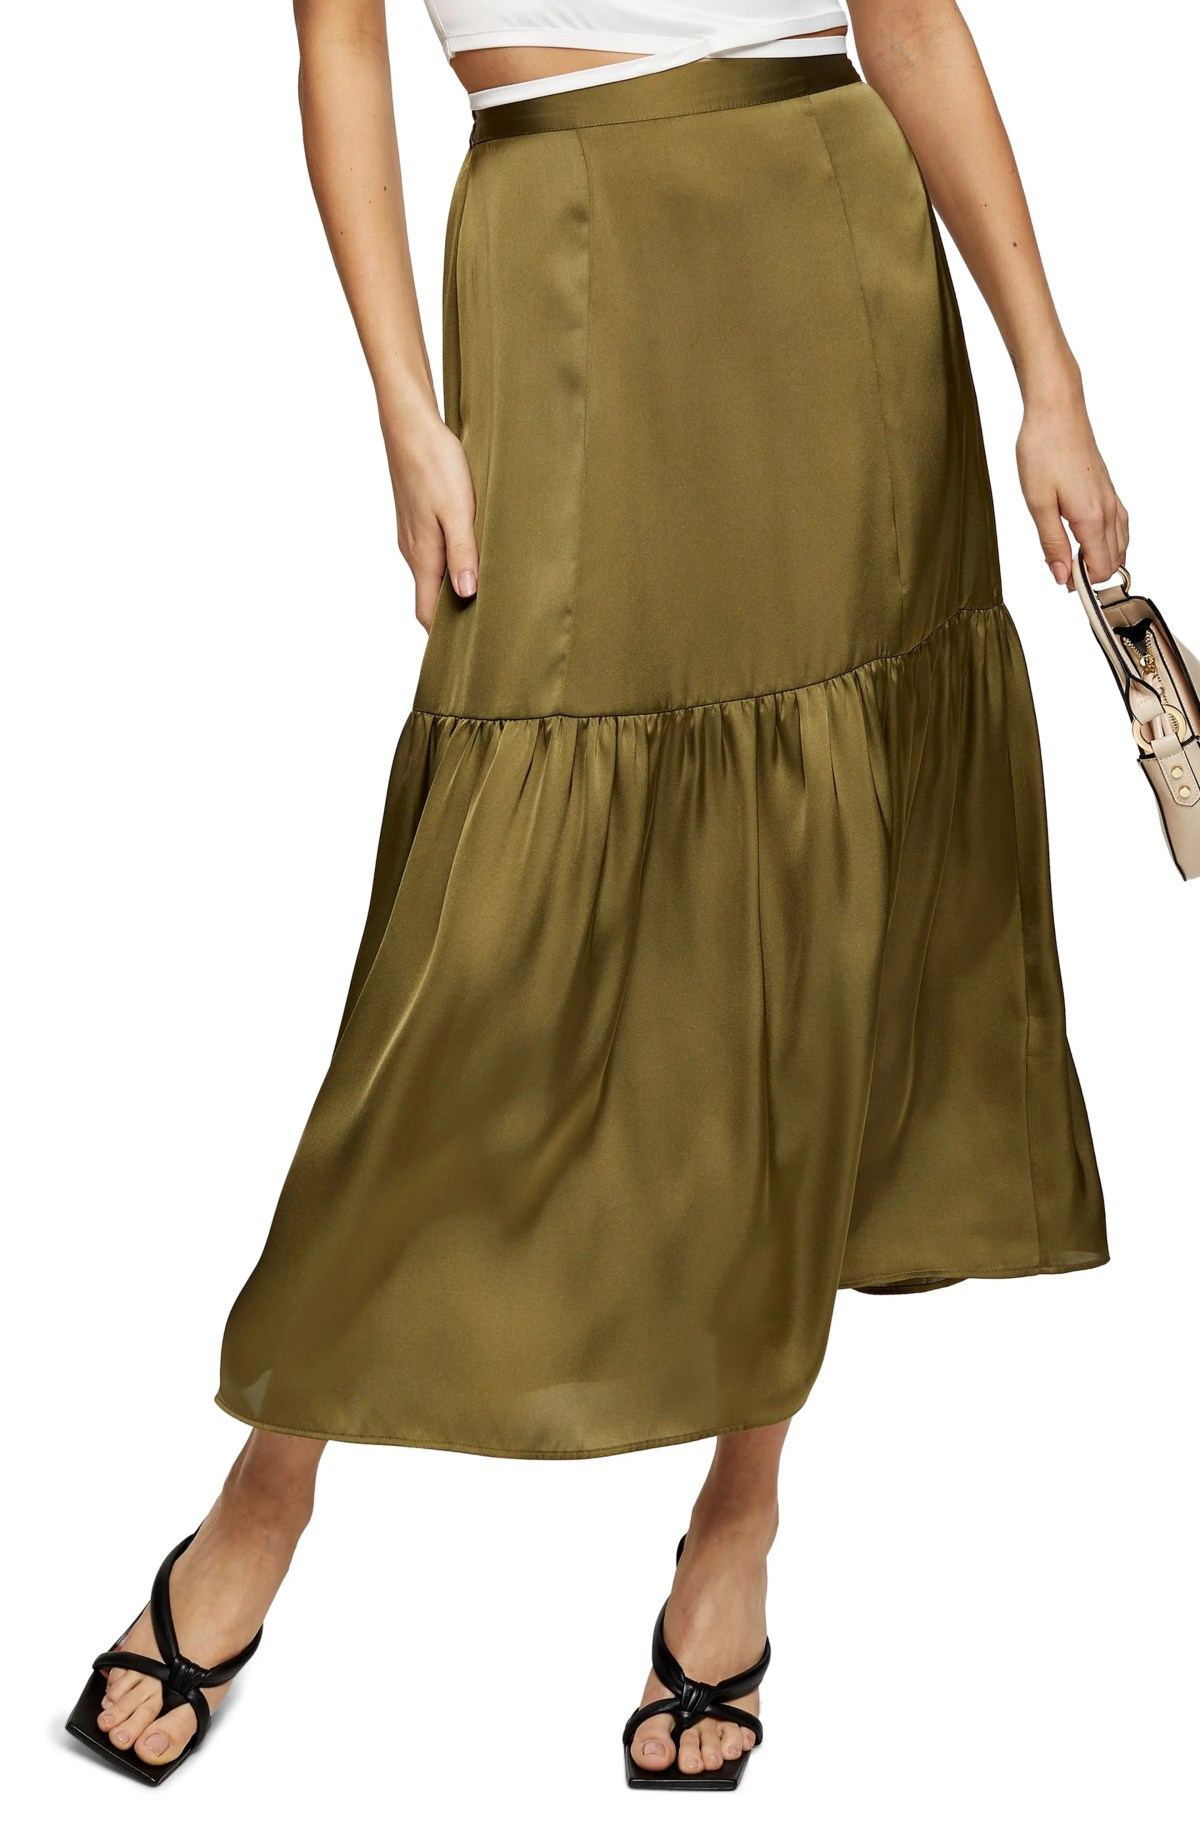 TOPSHOP Satin Tiered Midi Skirt, Main, color, OLIVE